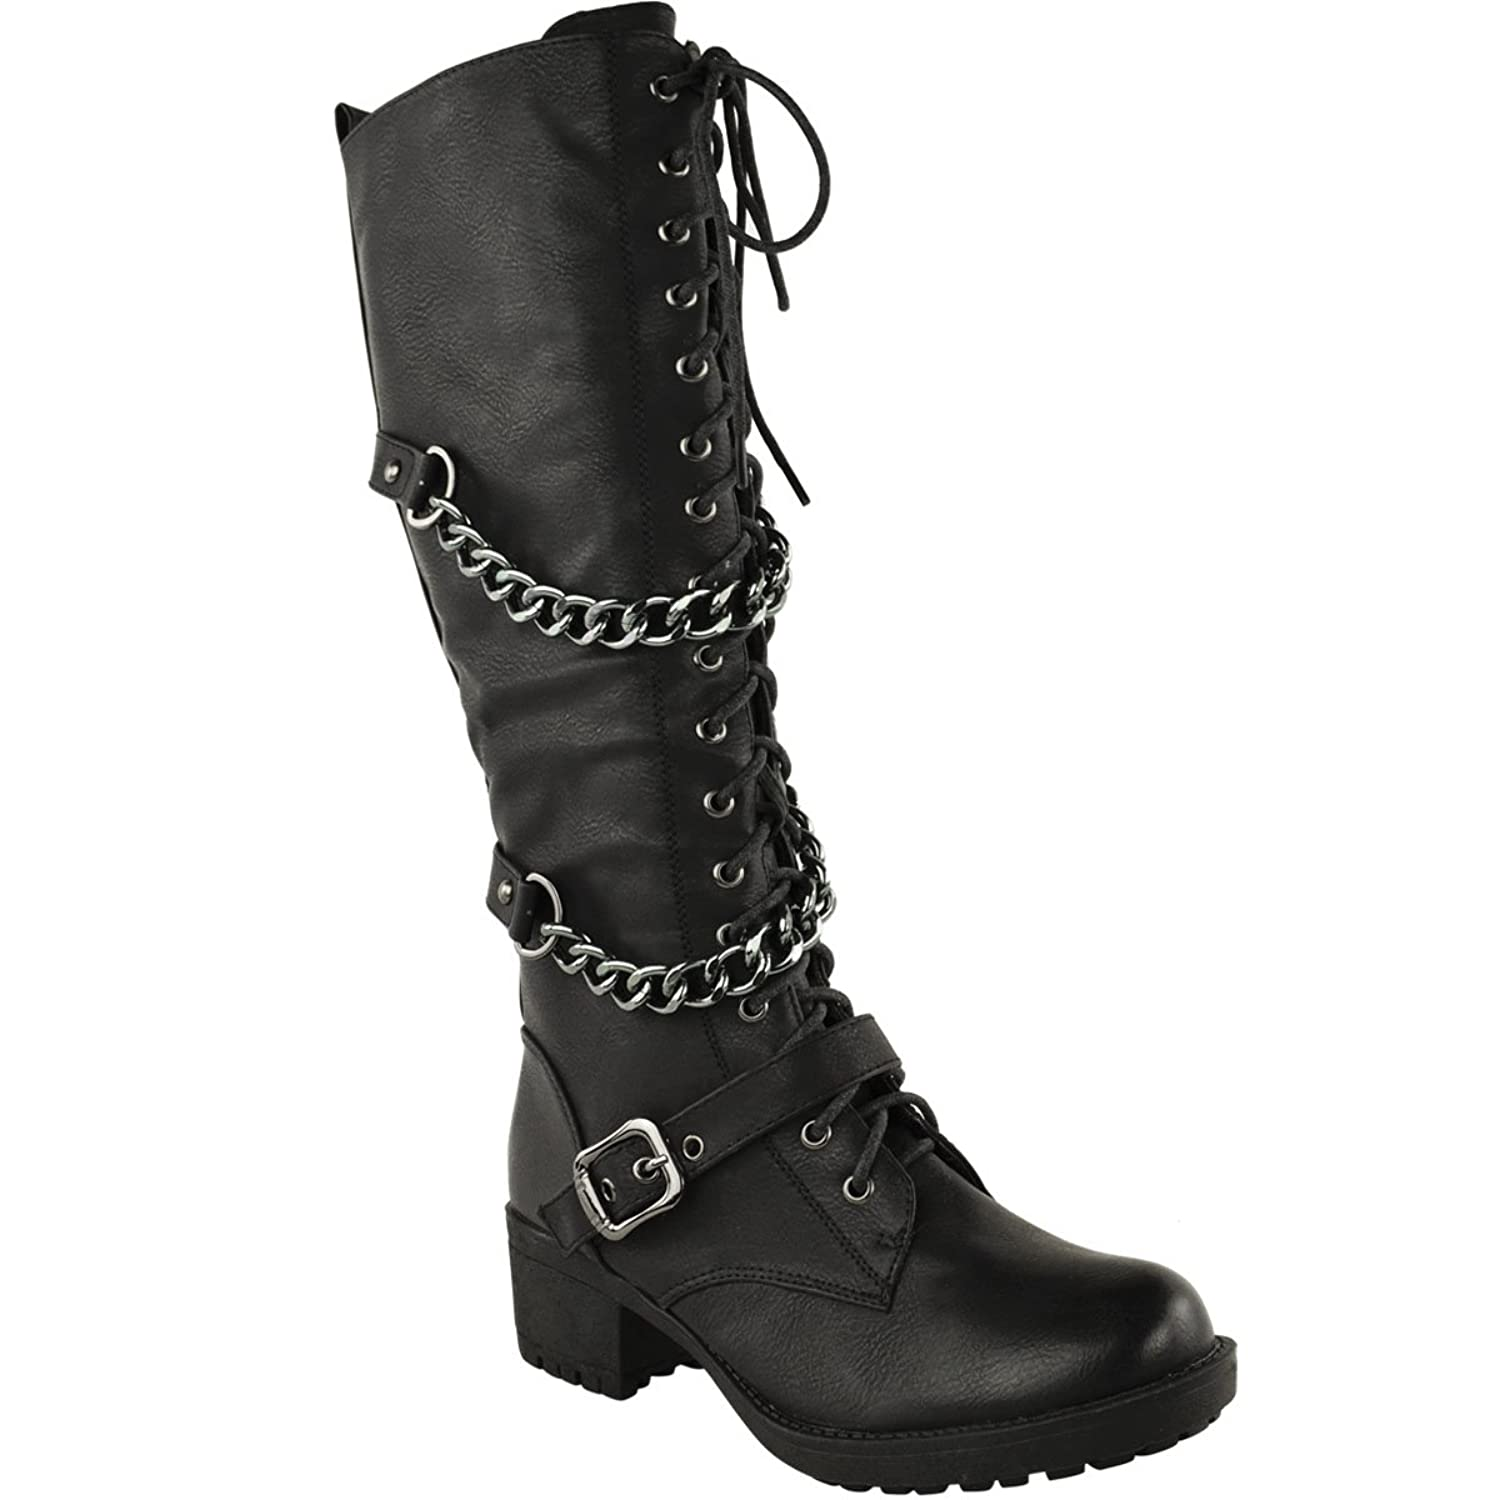 Womens Size 12 Black Knee High Boots 63